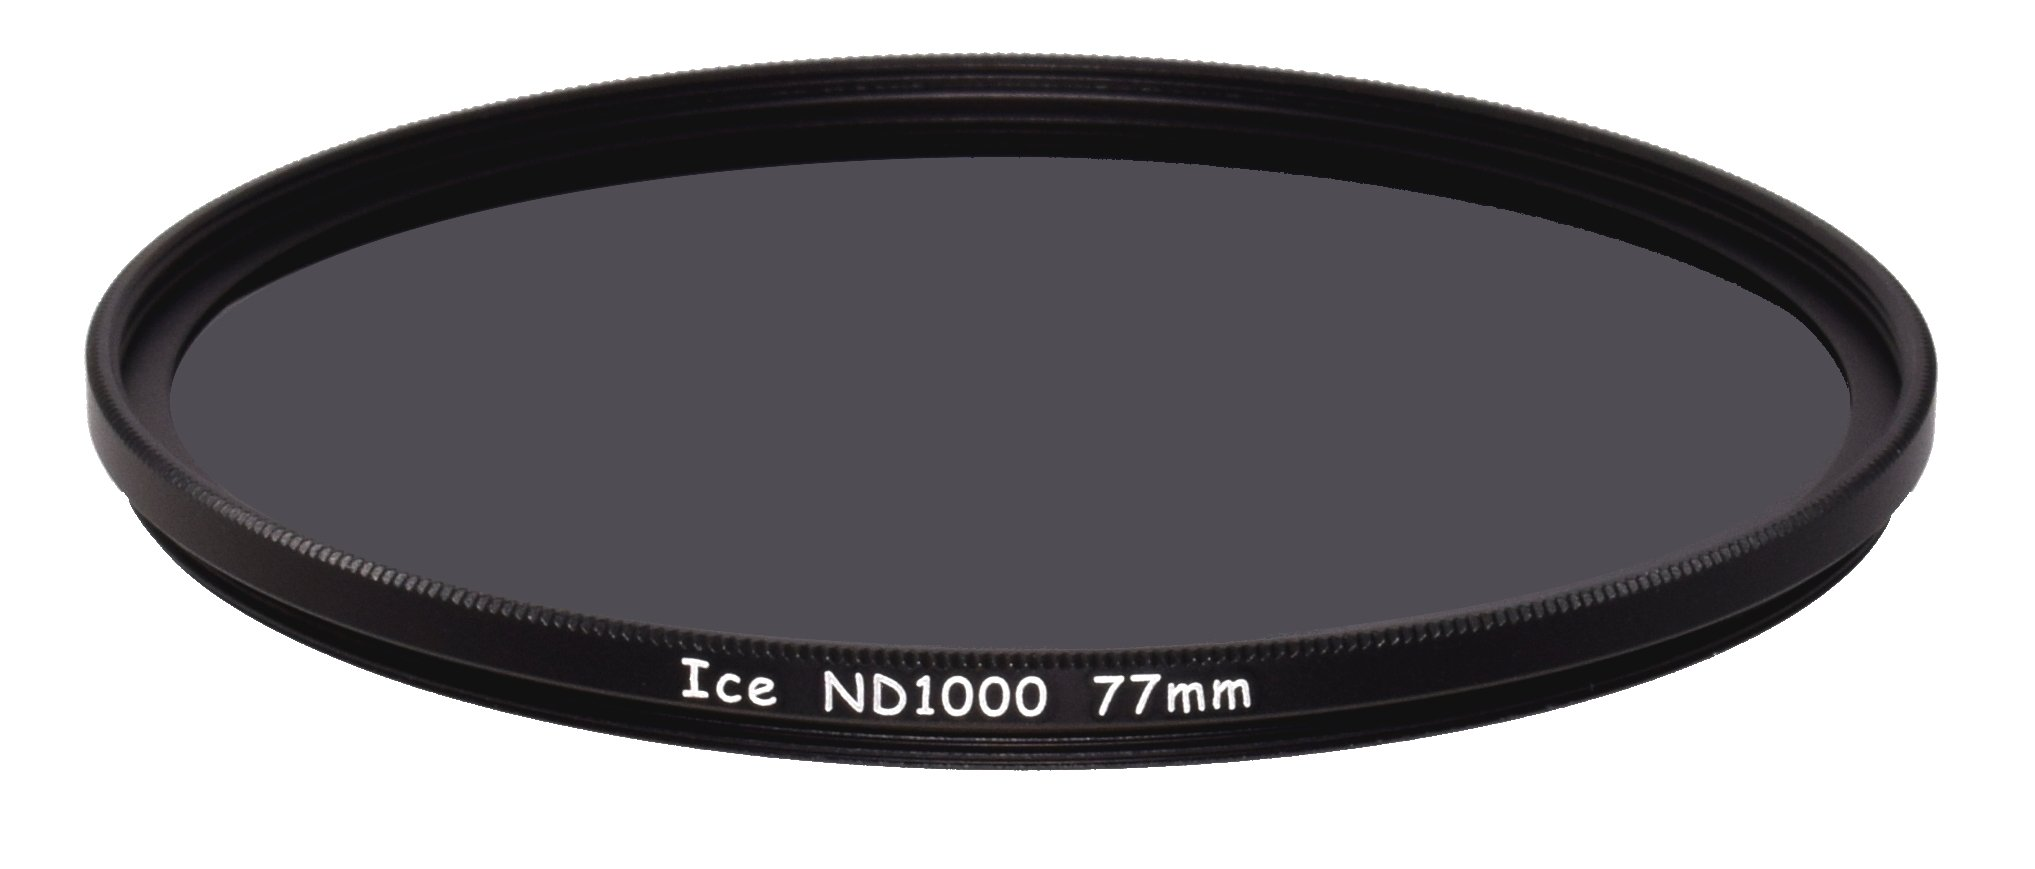 ICE 77mm ND1000 Filter Neutral Density ND 1000 77 10 Stop Optical Glass by Unknown